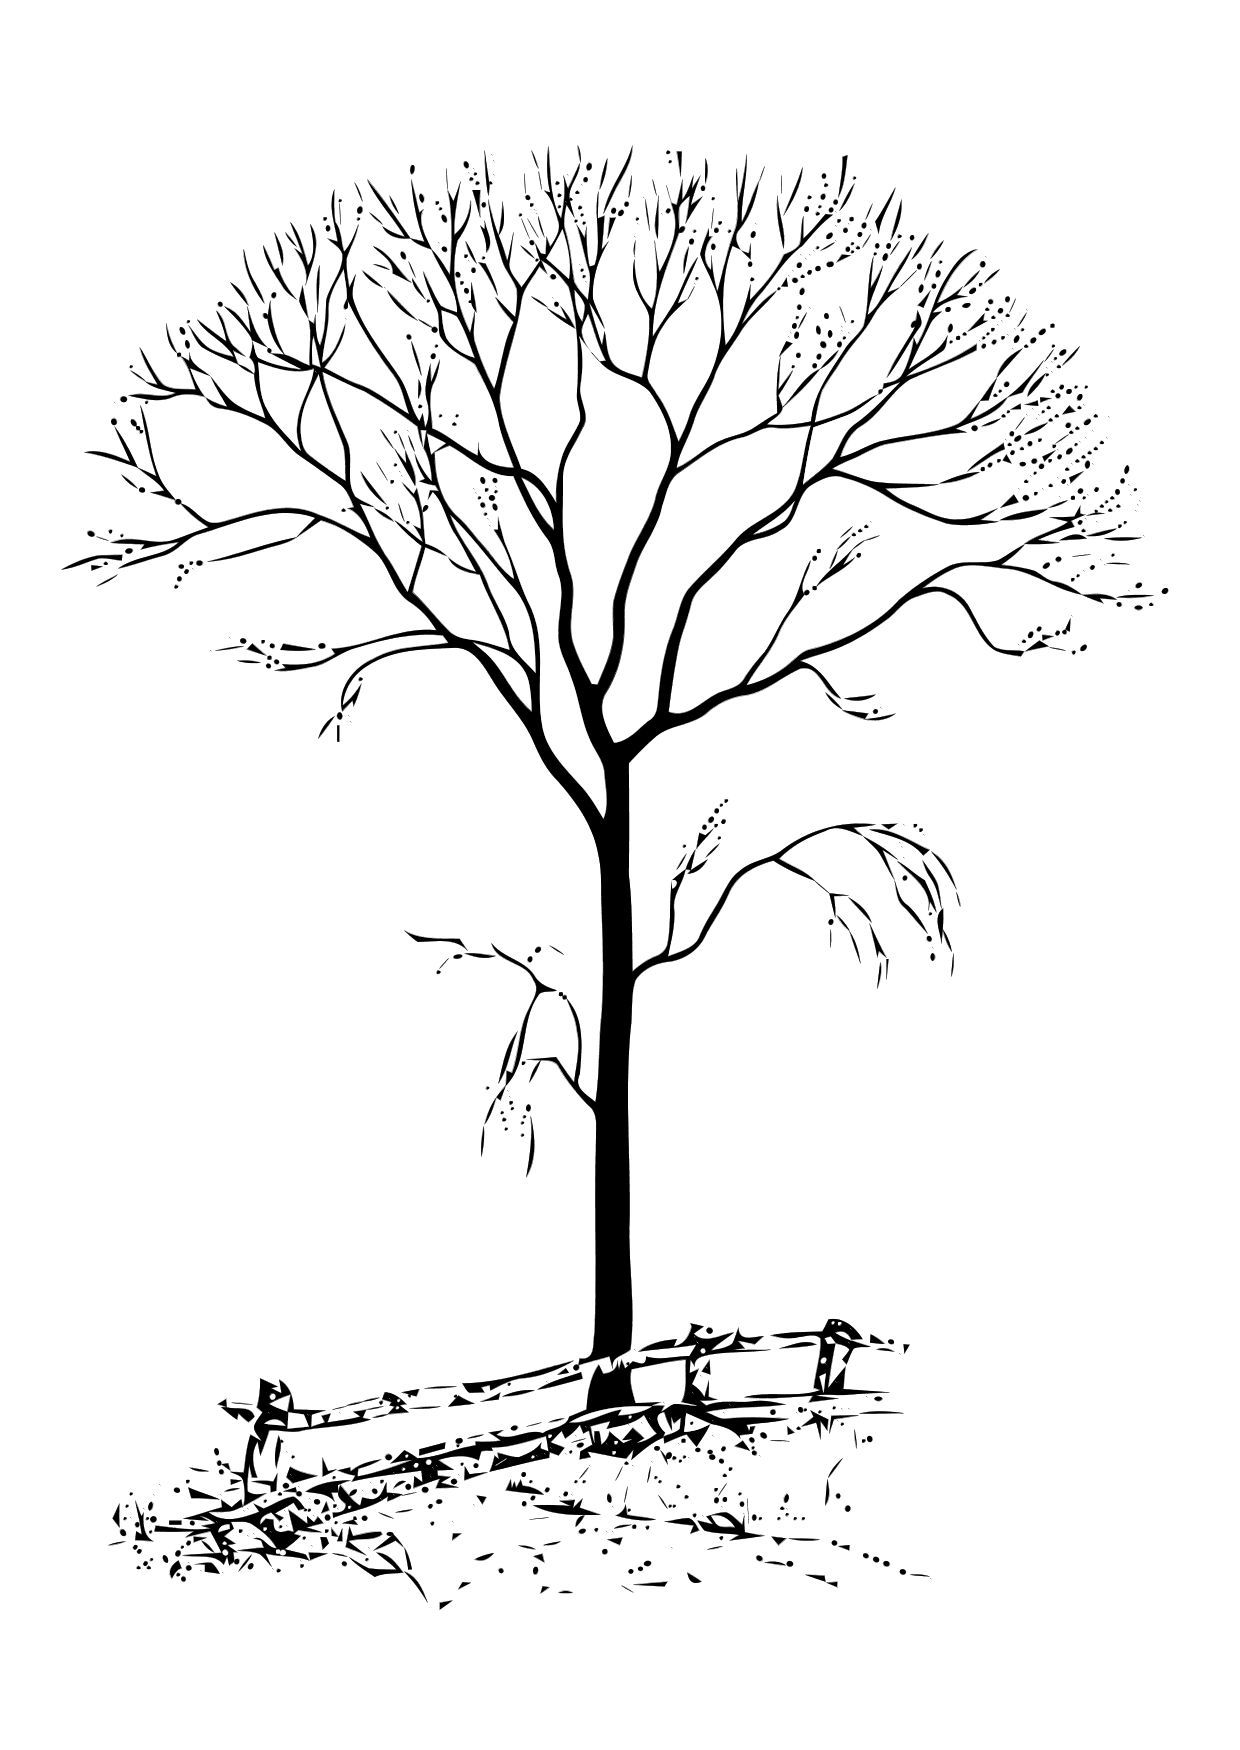 Free Printable Tree Coloring Pages For Kids Leaf Coloring Page Tree Coloring Page Coloring Pages Winter